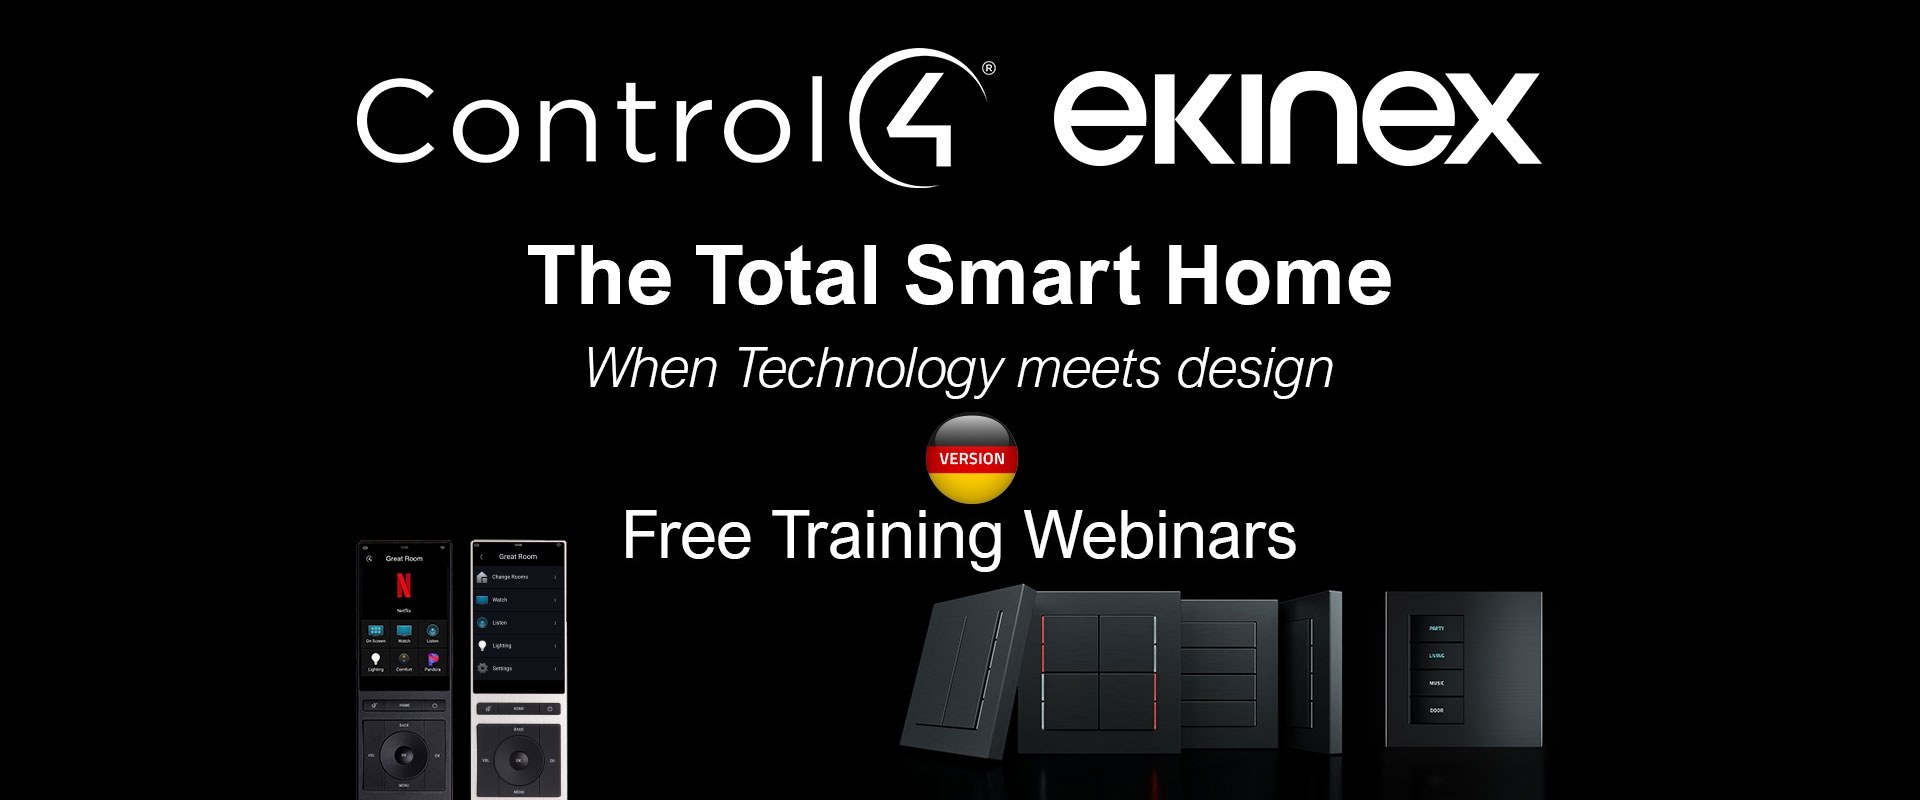 Webinar Ekinex + Control4 - The Total Smart Home - Janvier 2021